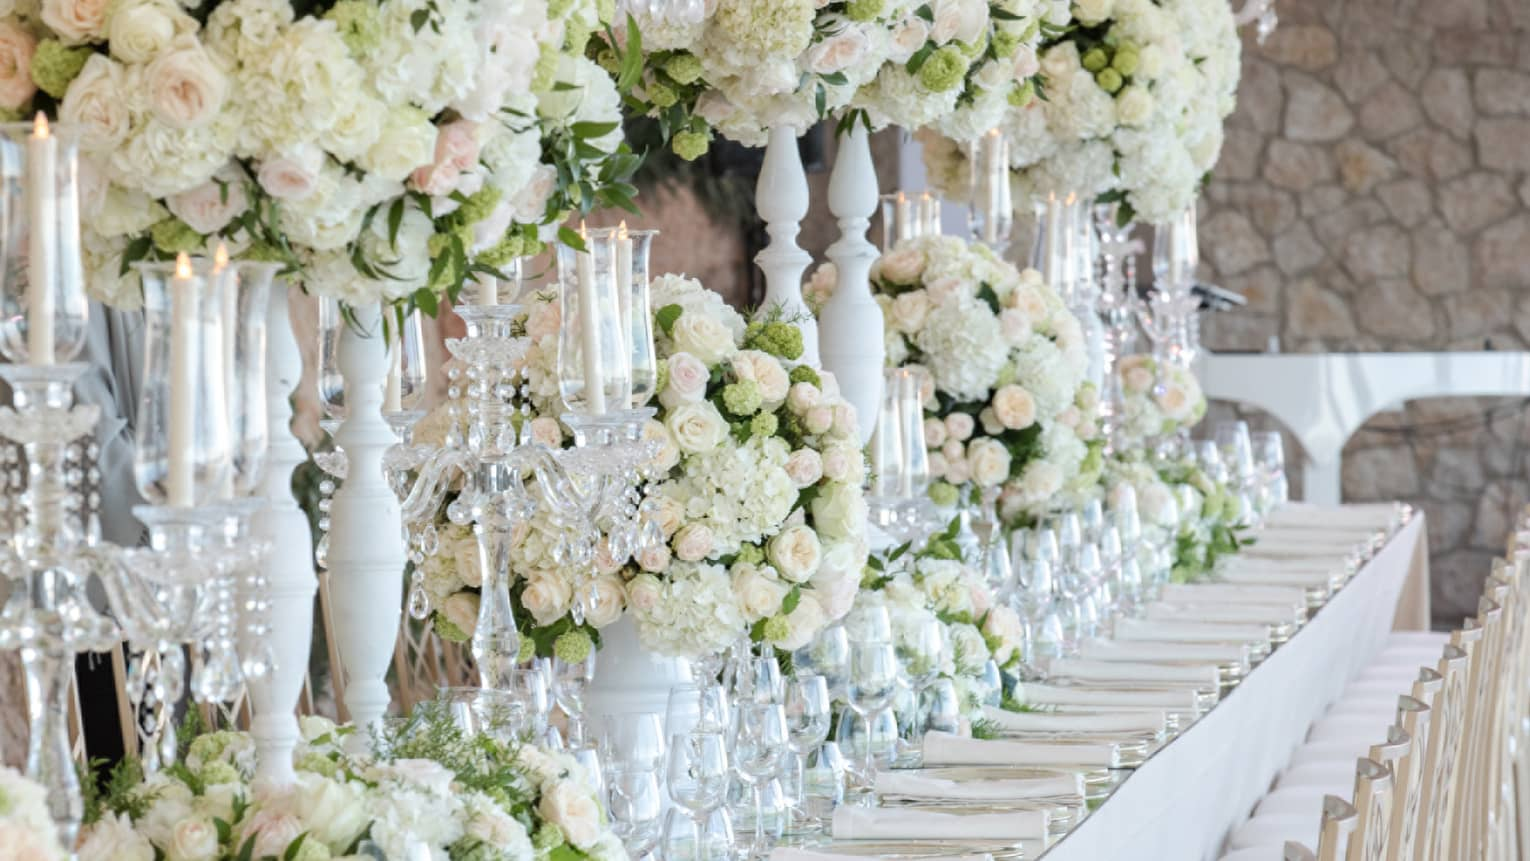 Elegantly set white banquet table lined with chairs, tall white and pink floral arrangements, candles